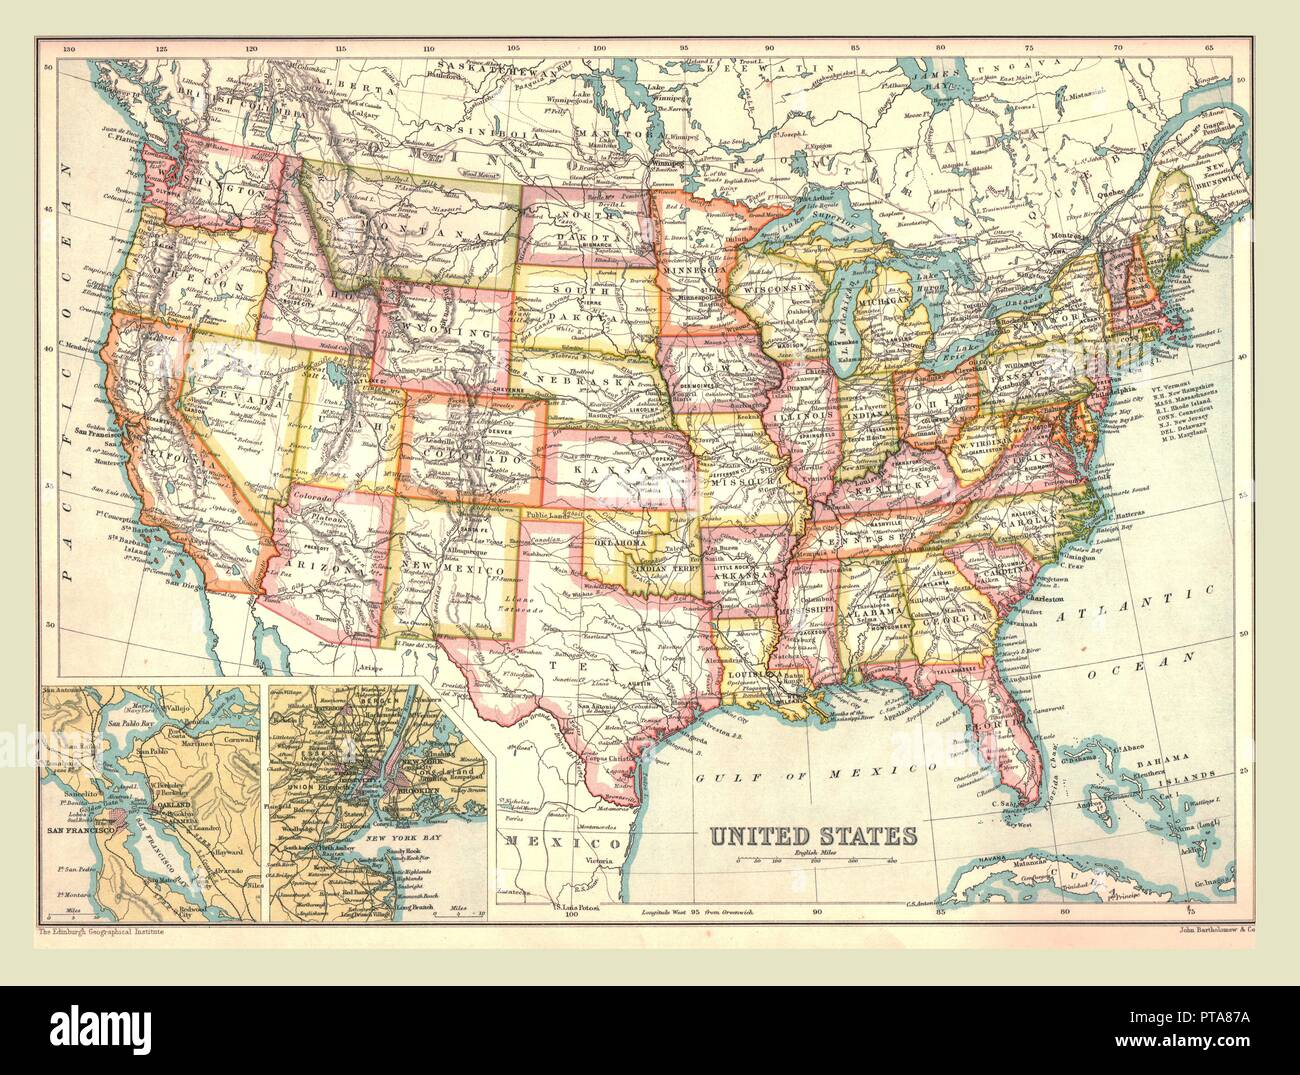 Map of the United States, 1902. Creator: Unknown Stock Photo ...  D Map States on state time, state puzzle, state of alabama, state initials, state populations in order, state population density, state parks in north alabama, state of obesity, state function, state flag, state capitals, state list, state newspaper, state climate, state of south dakota website, state names, state topography, state of louisiana, state of al counties, state city,